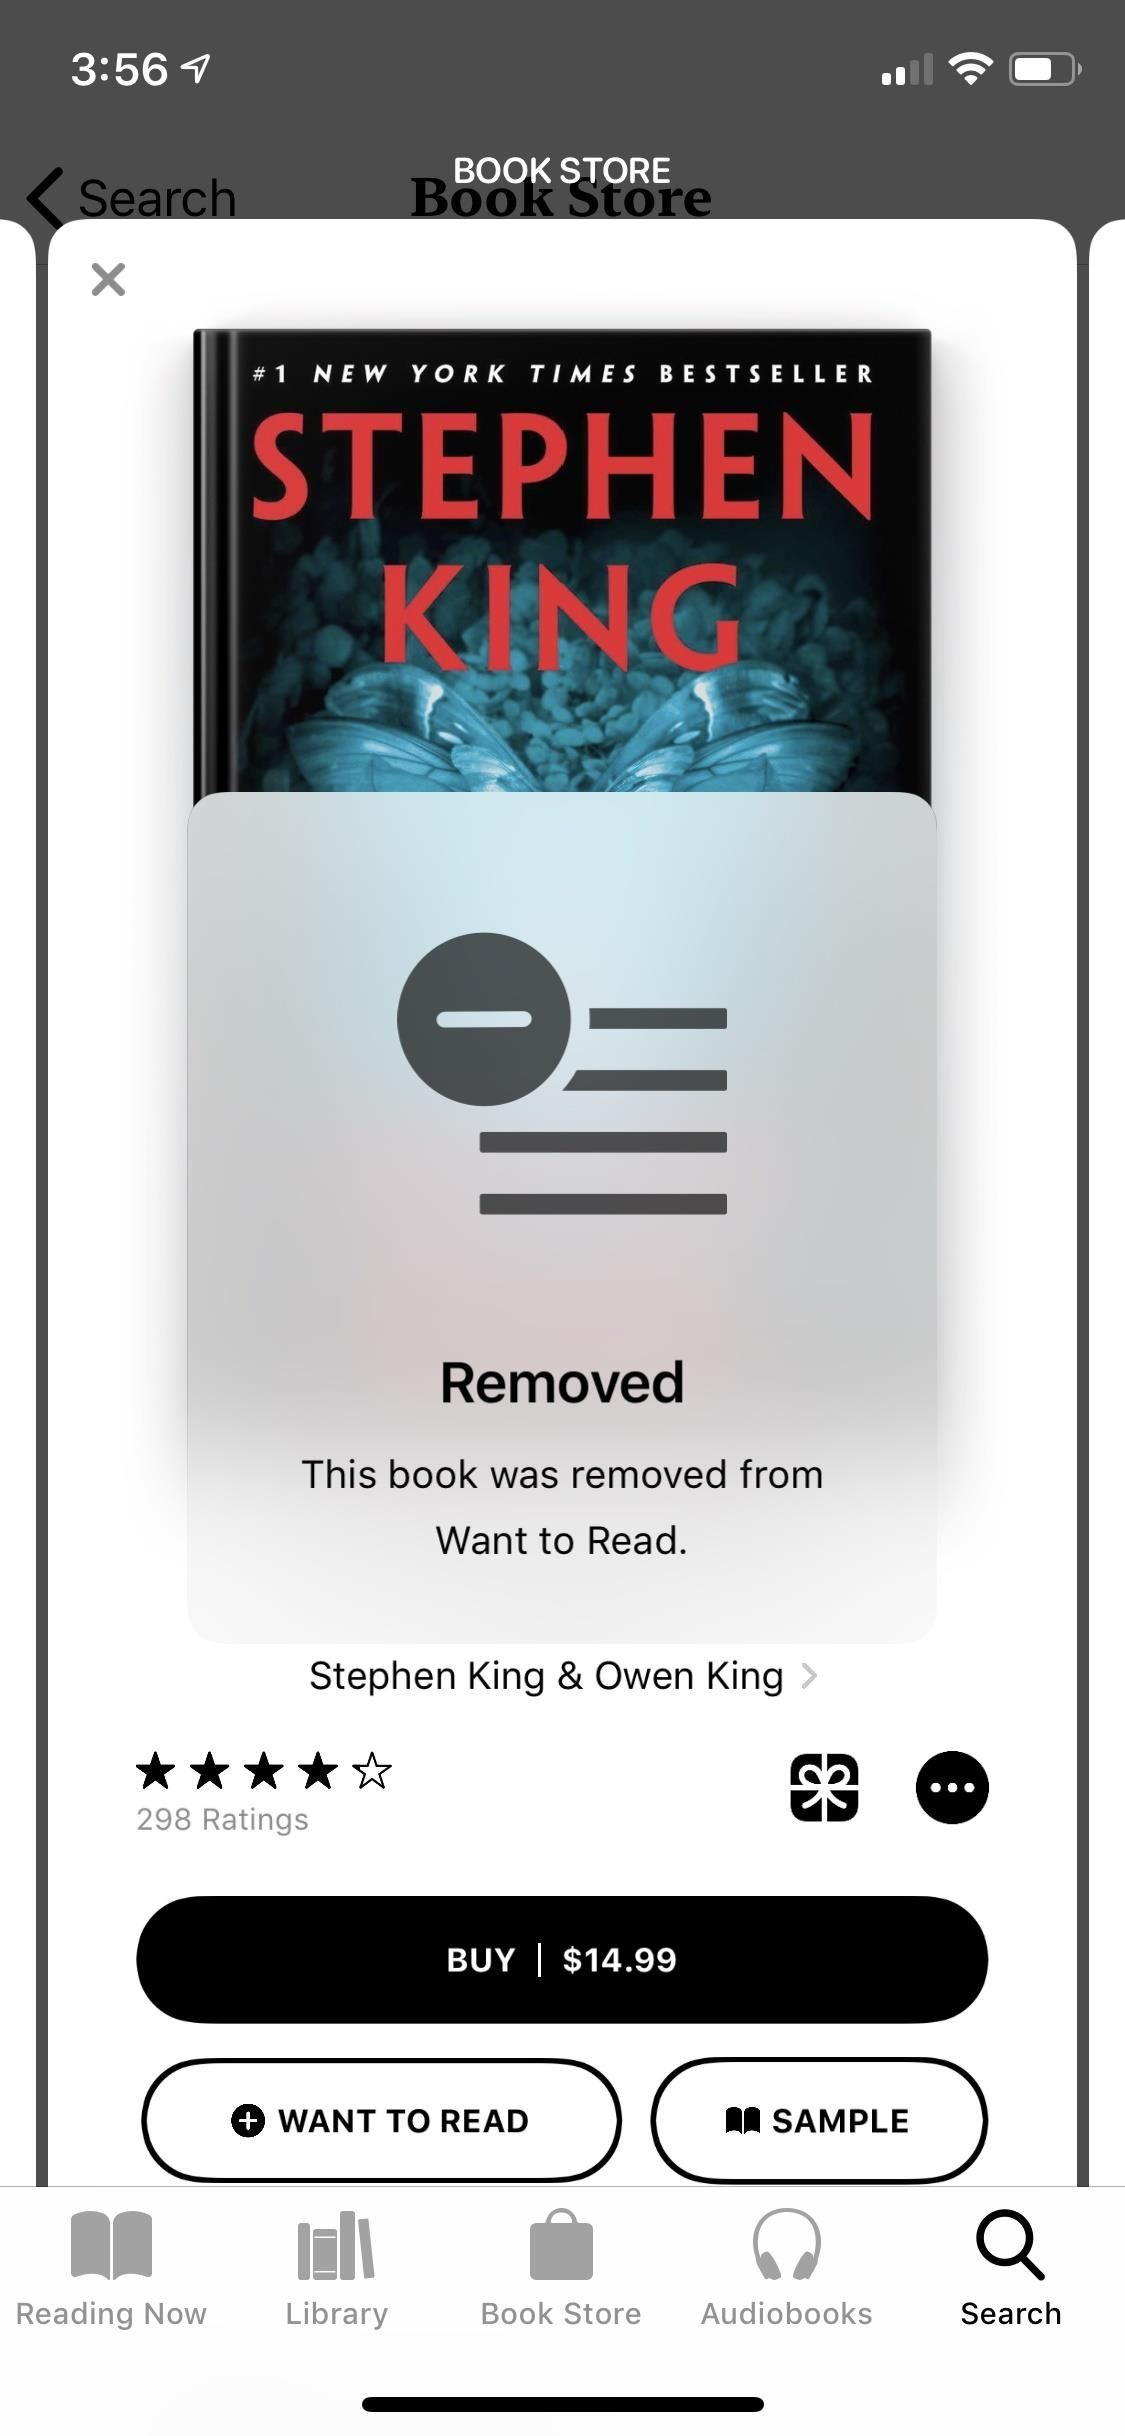 Apple Books in iOS 12 Finally Gives a 'Want to Read' Wish List for E-books & Audiobooks — Here's How It Works